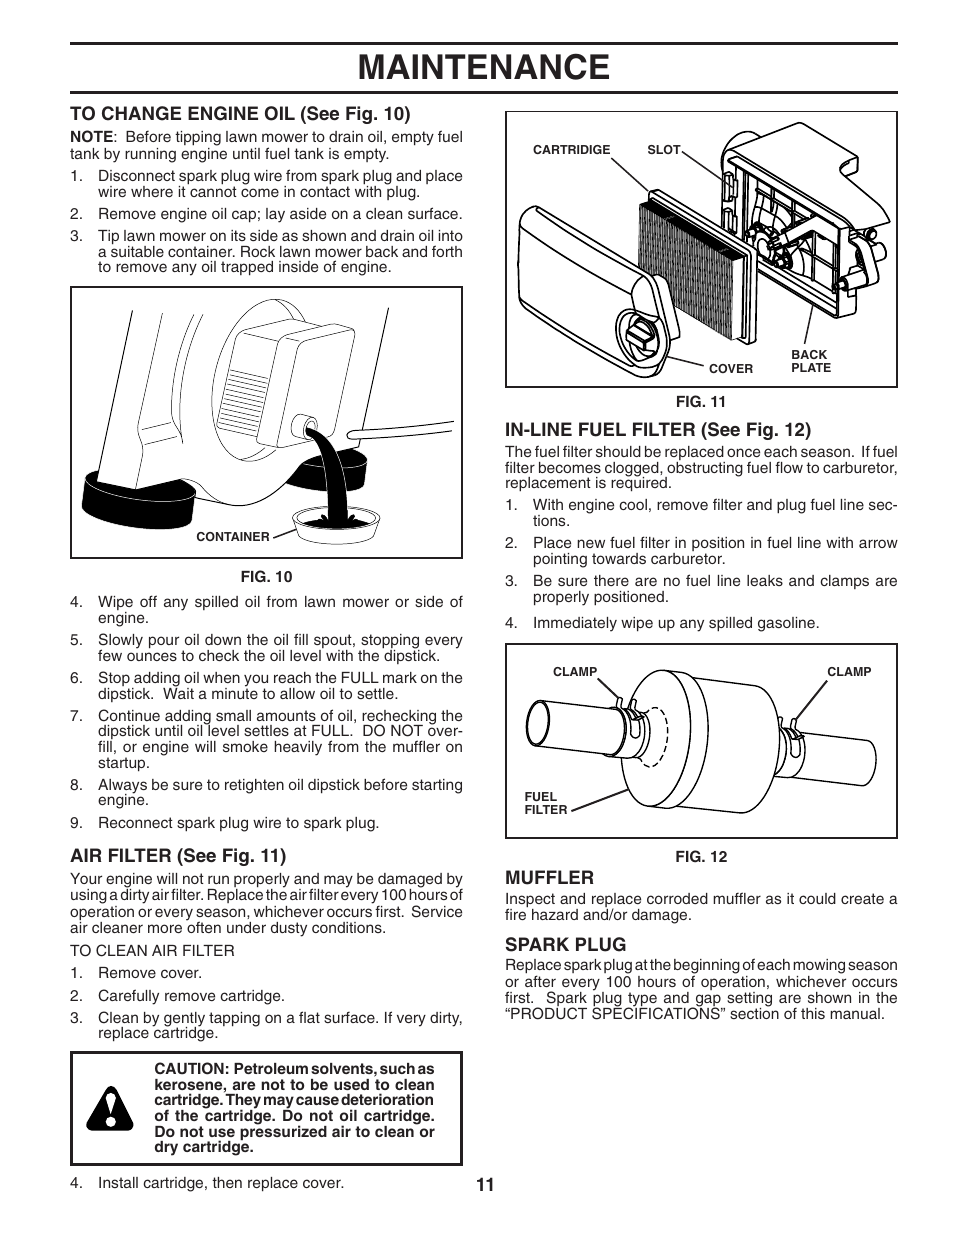 maintenance husqvarna 6021p user manual page 11 16 rh manualsdir com Husqvarna 6021P Push Lawn Mower Husqvarna 6021P Owner's Manual